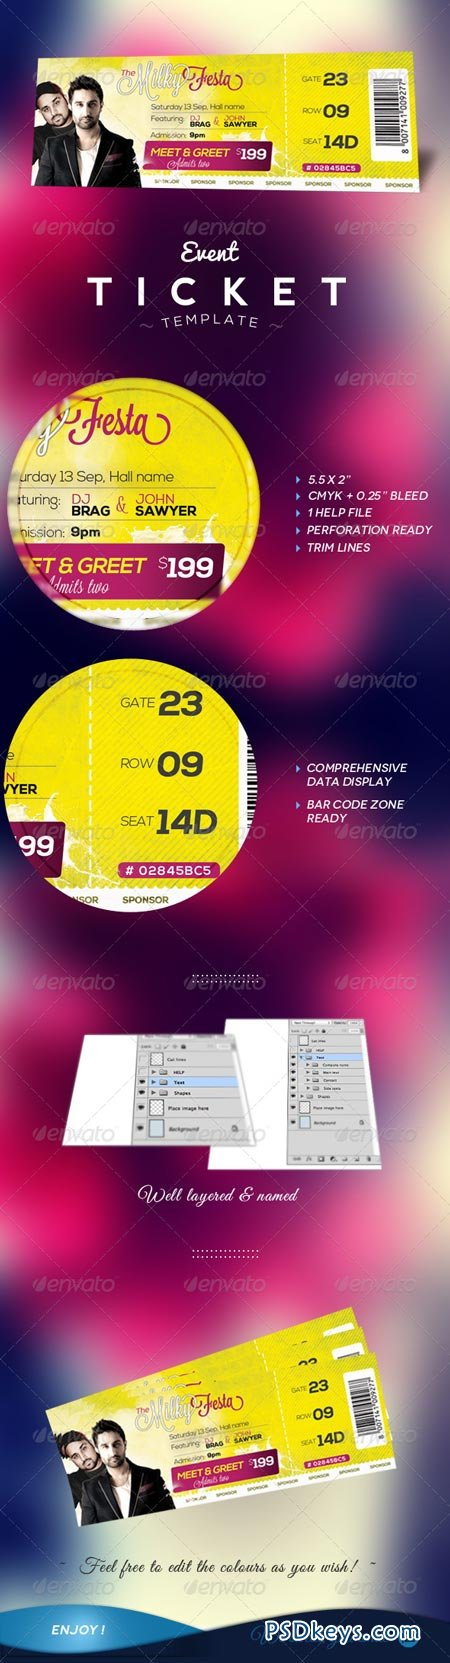 Event Tickets Template 5813141 Free Download Photoshop Vector – Event Ticket Template Free Download